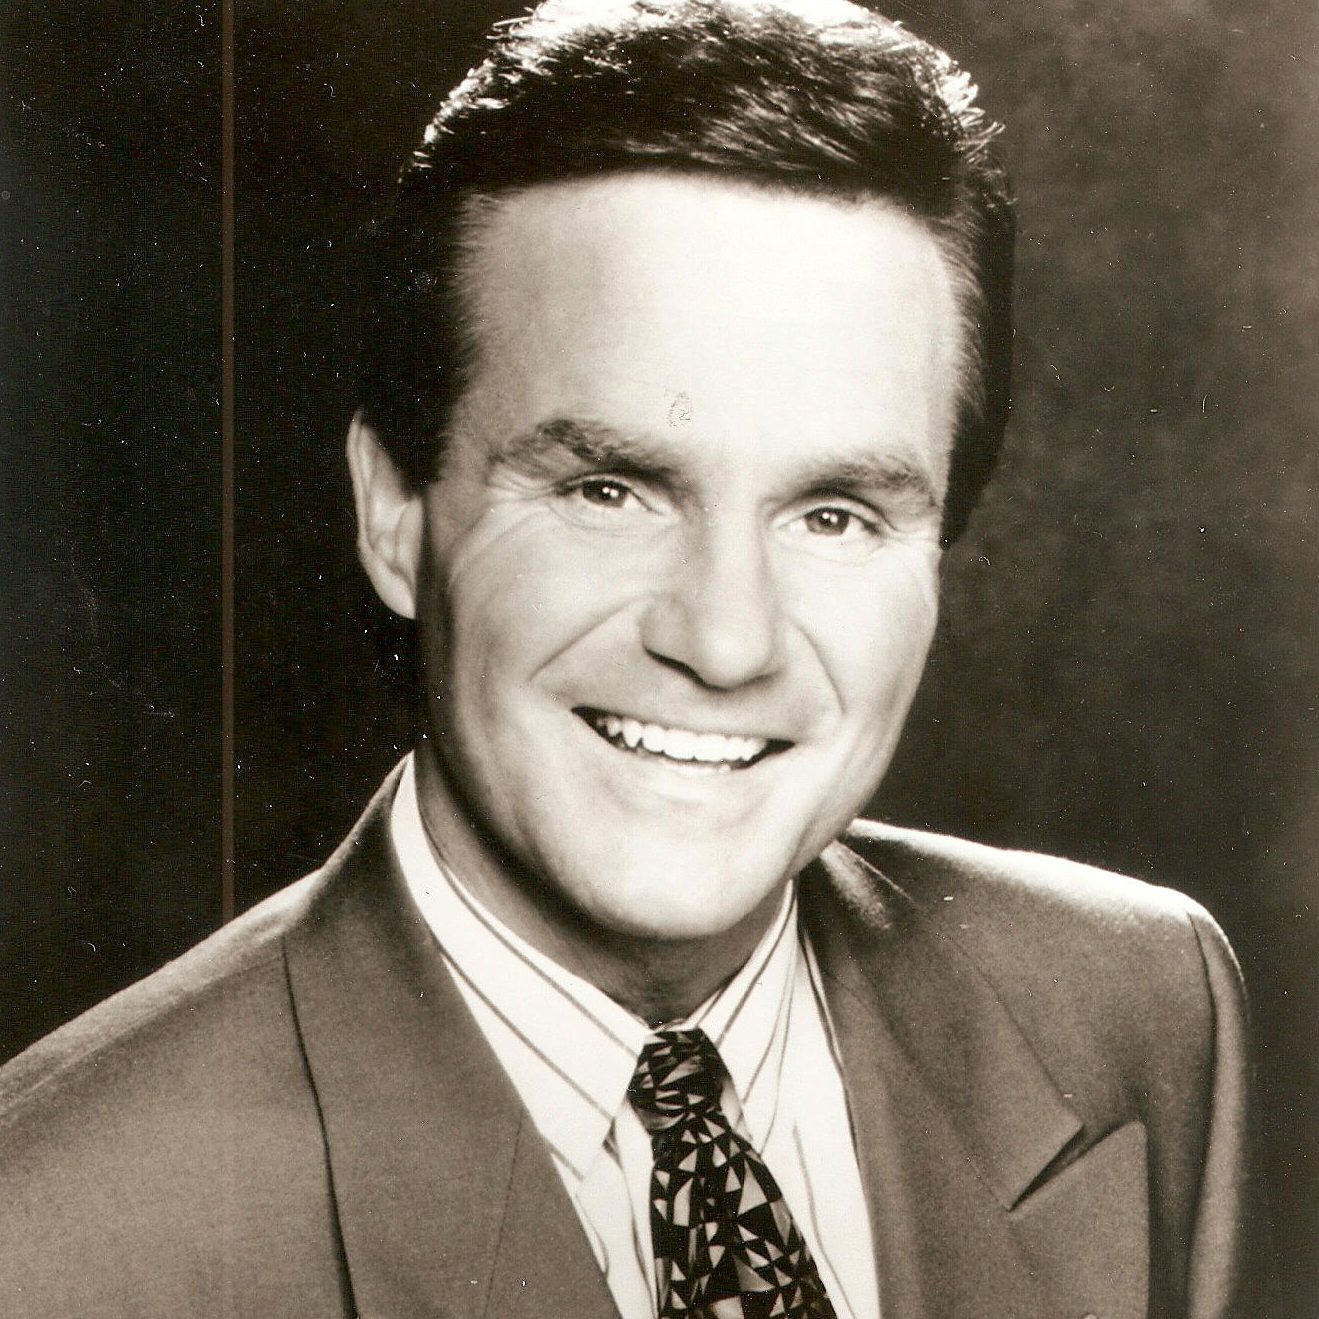 ray combs 1995 e1576575637762 20 Things You Might Not Have Known About 80s Rom-Com Classic Overboard